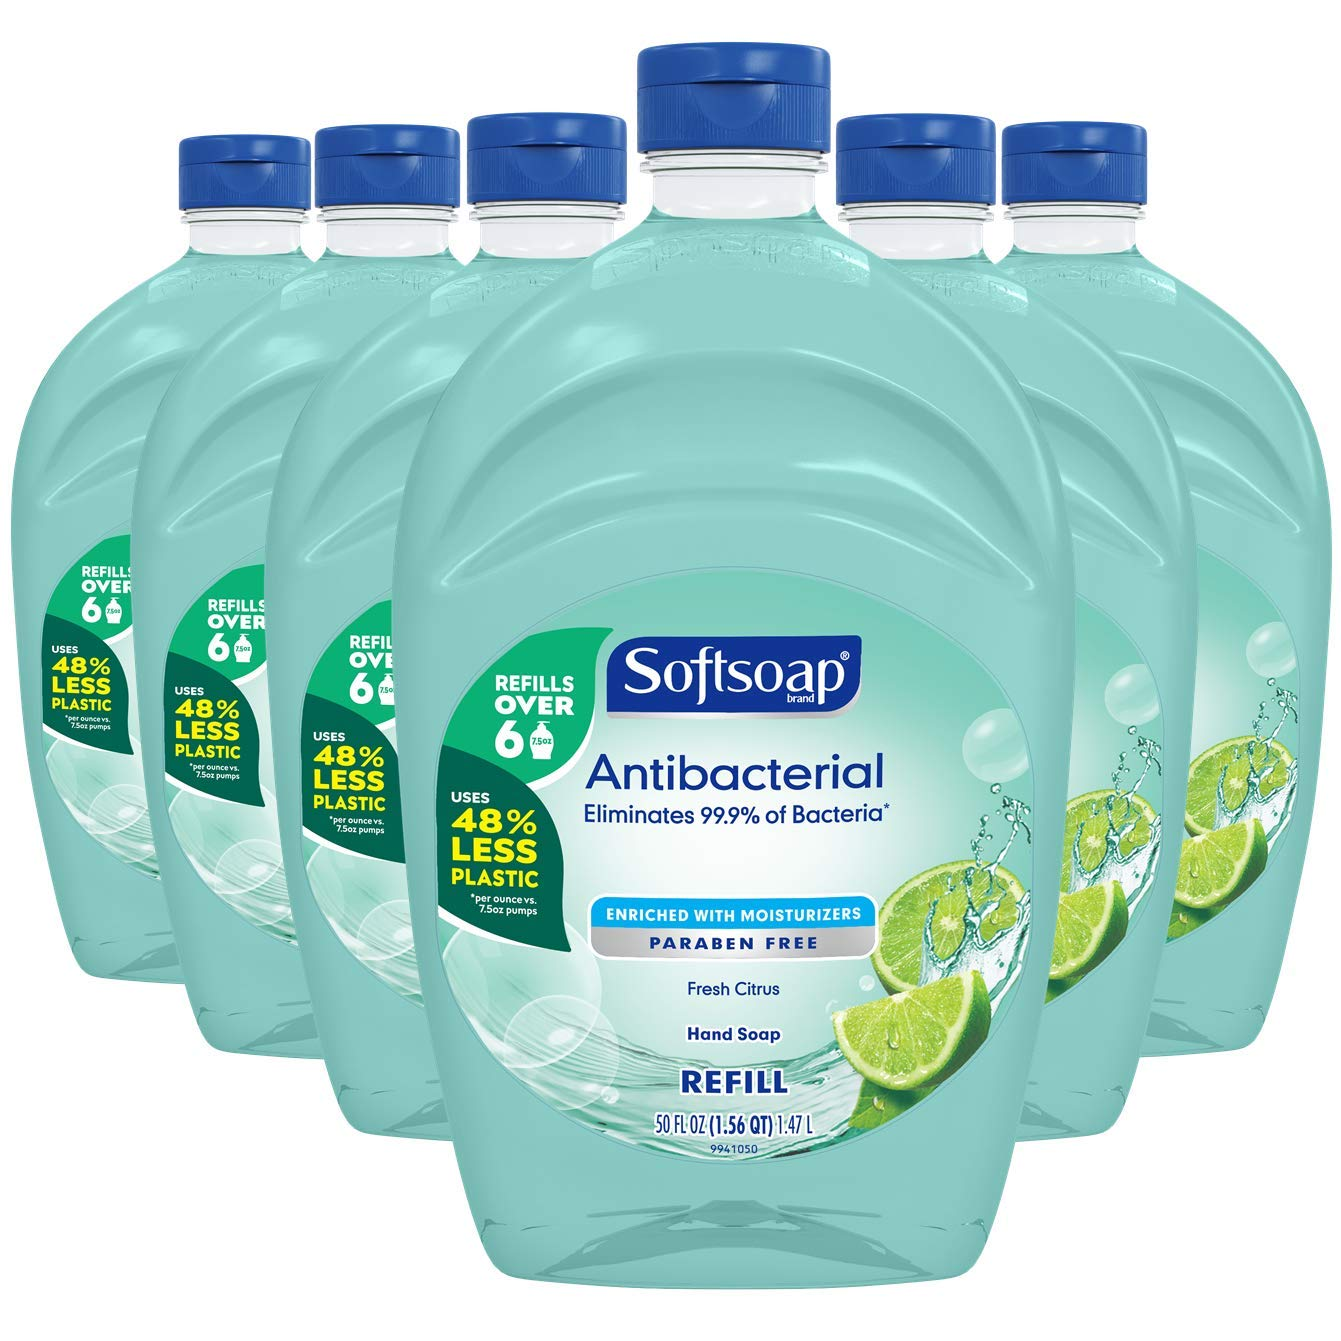 Softsoap - US05266A SOFTSOAP Antibacterial Liquid Hand Soap Refill, Fresh Citrus, 50 Ounce Bottle, Bathroom Soap, Bulk Soap, Moisturizing Antibacterial Hand Soap (Pack of 6)